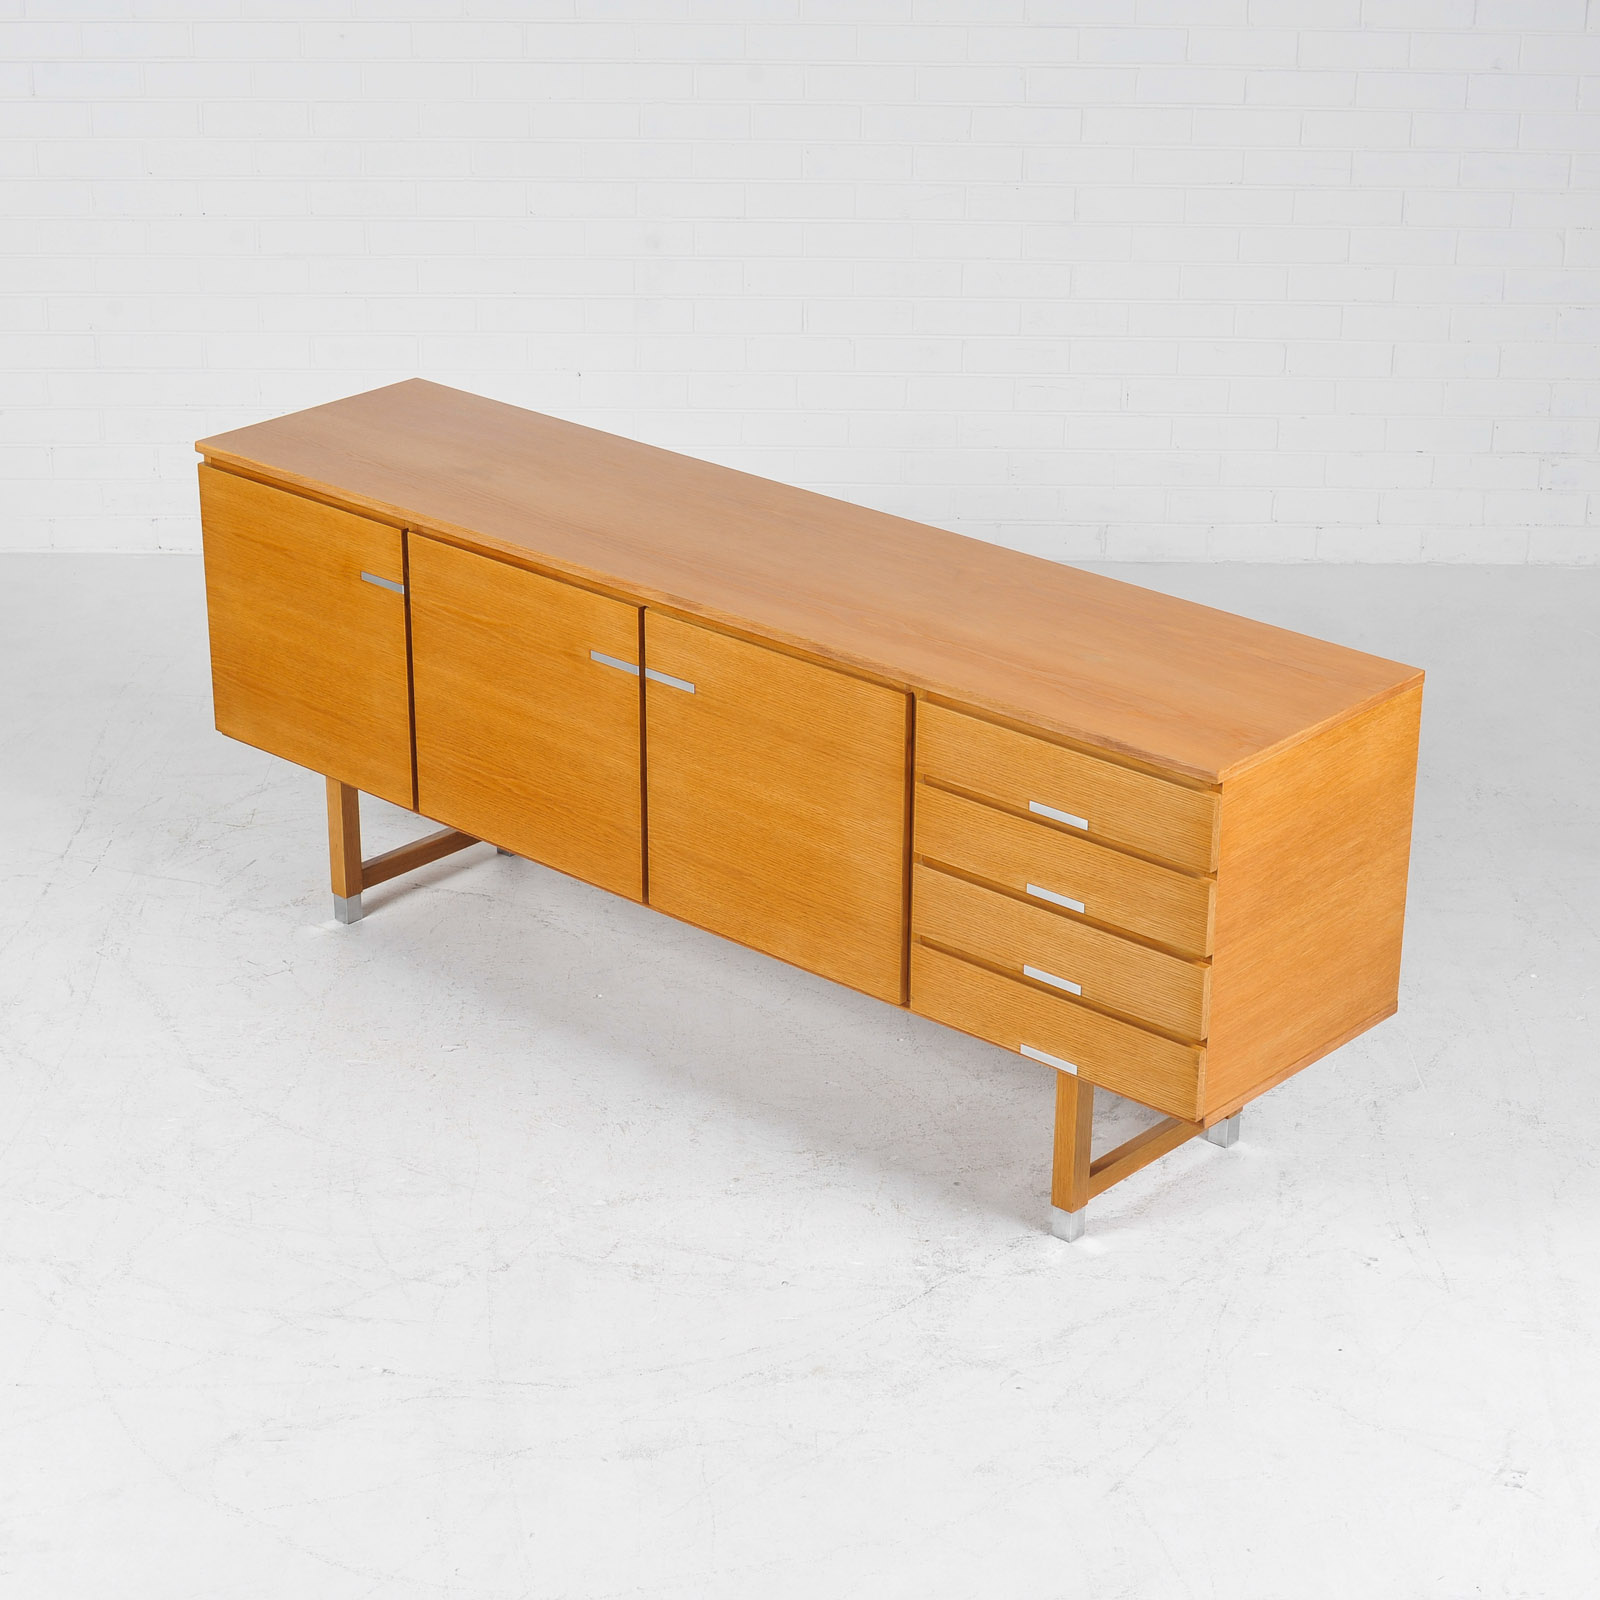 Sideboard By Kai Kristiansen For Fm Mobler In Oak With Polished Aluminium Details 1960s Denmark 05